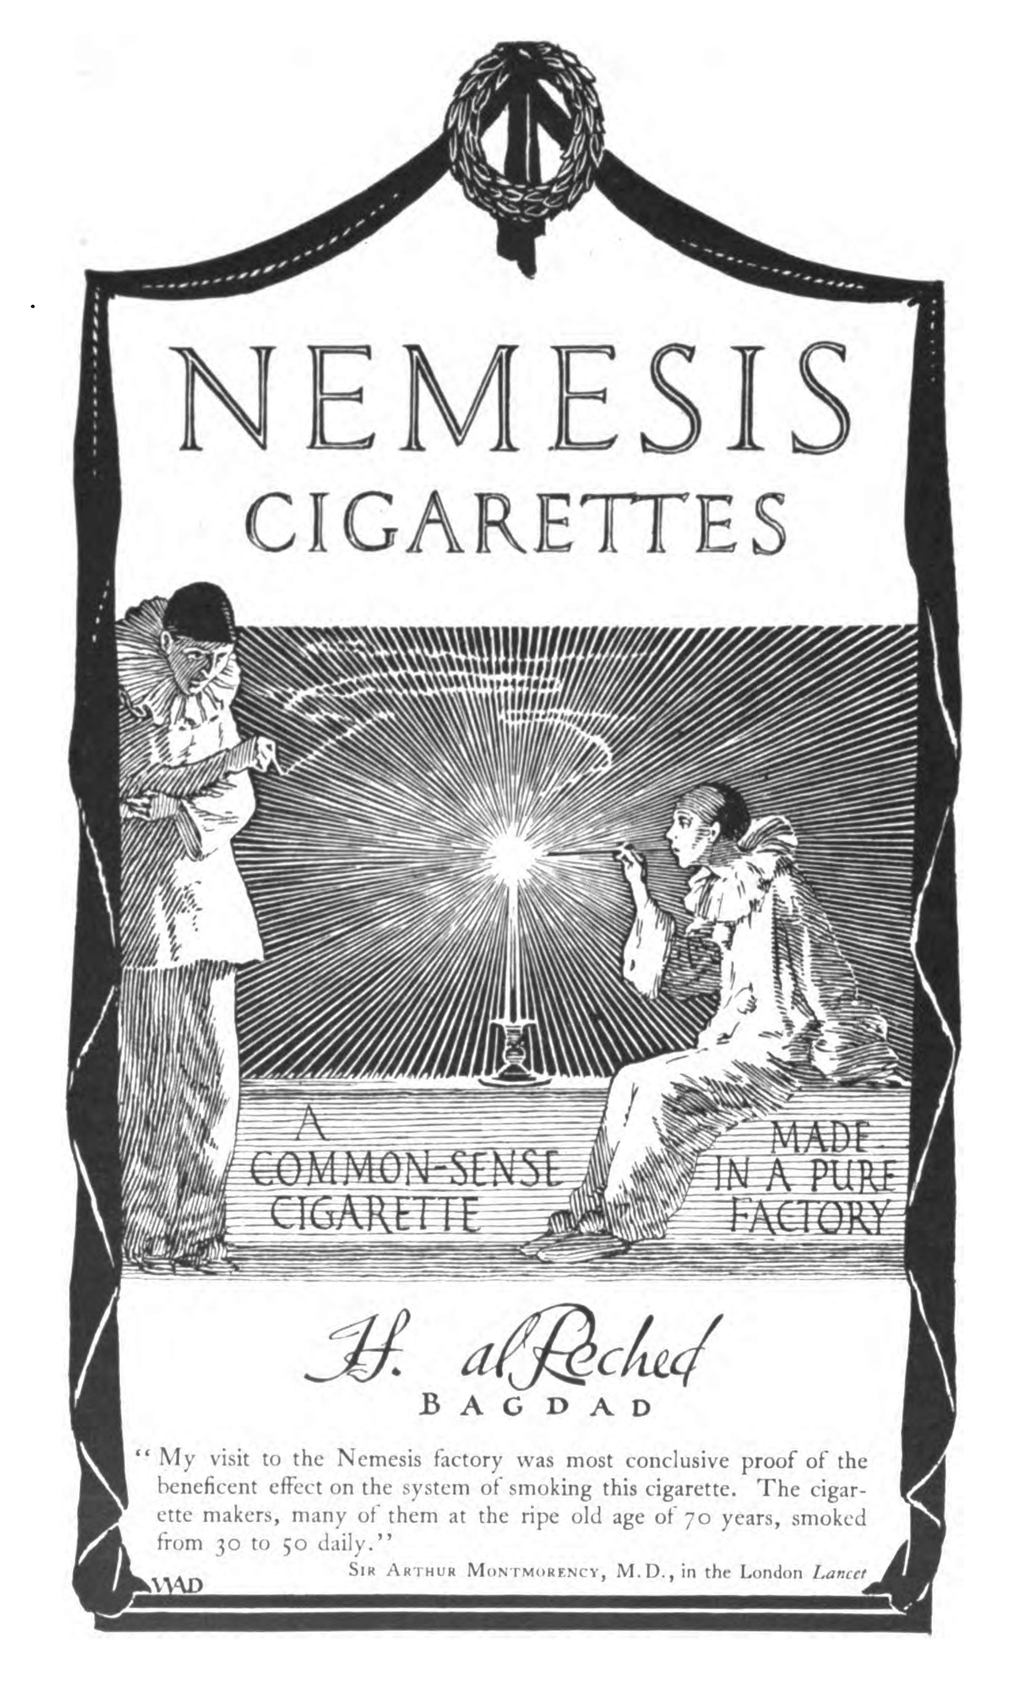 "Nemesis Cigarettes advertisement by W.A. Dwiggins. From ""Drawings that Sell Goods"" by Hermann Püterschein in The Printing Art vol. XXVIII, no. 1 (September 1916)."